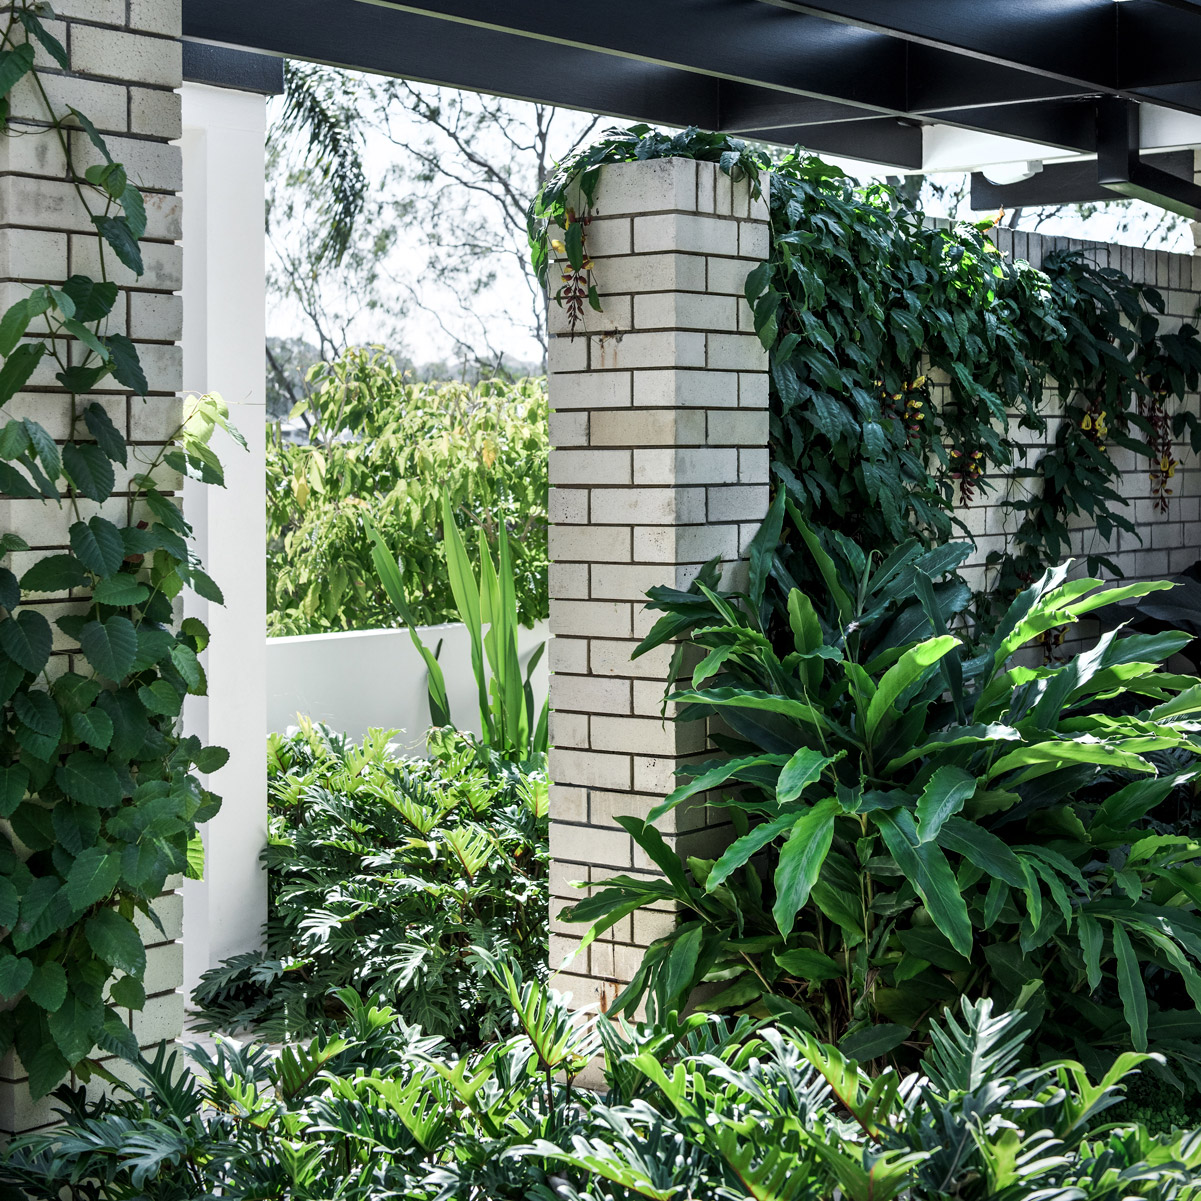 LANDSCAPE AUSTRALIA - Foliage fervour: Bungalow Garden Rooms Words by Ricky Ray Ricardo, Photography by Cathy Schusler